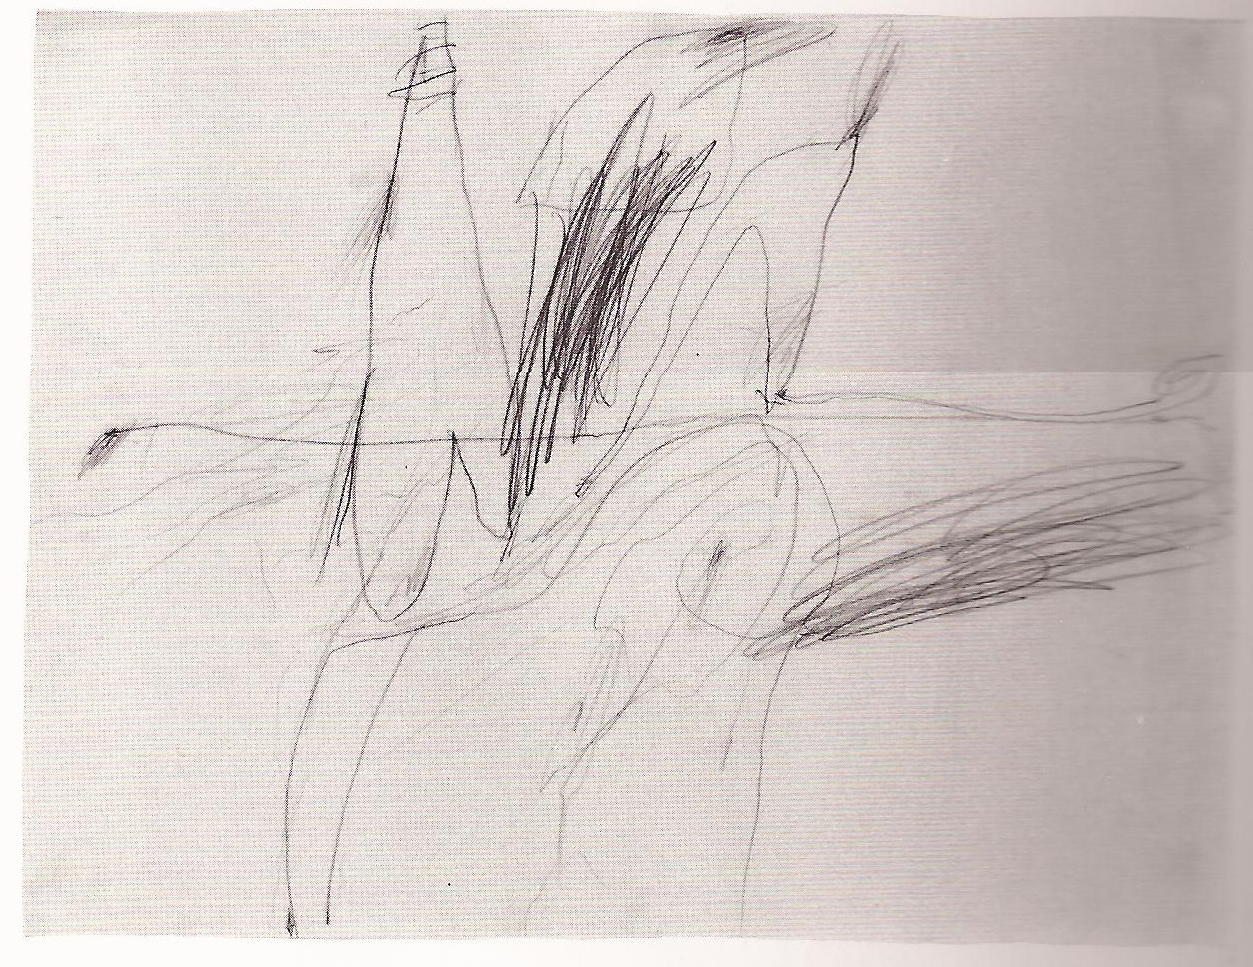 Blind drawing by Cy Twombly, 1954